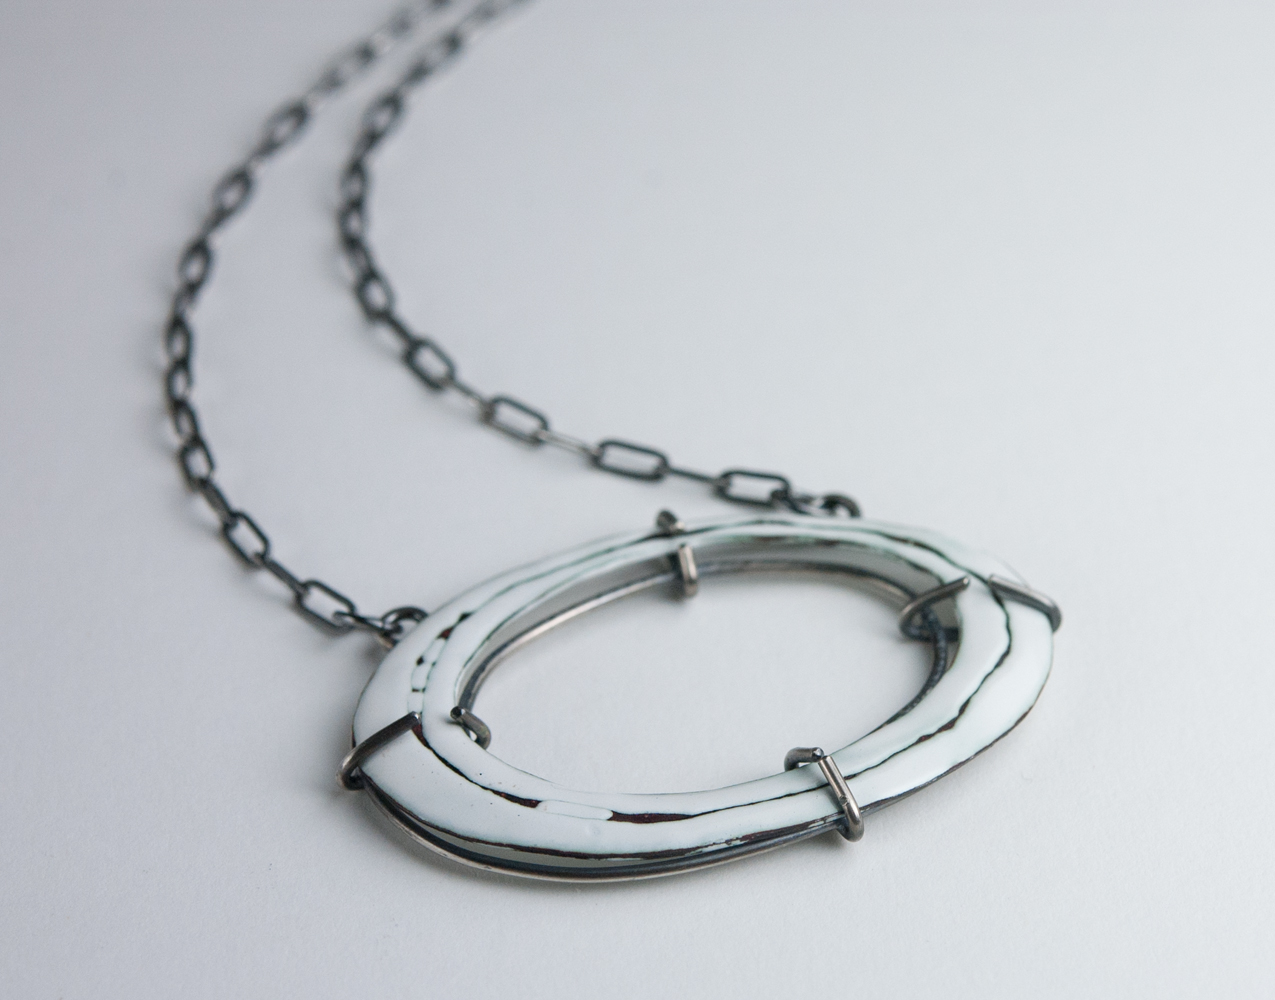 rustic flying saucer necklace3.jpg